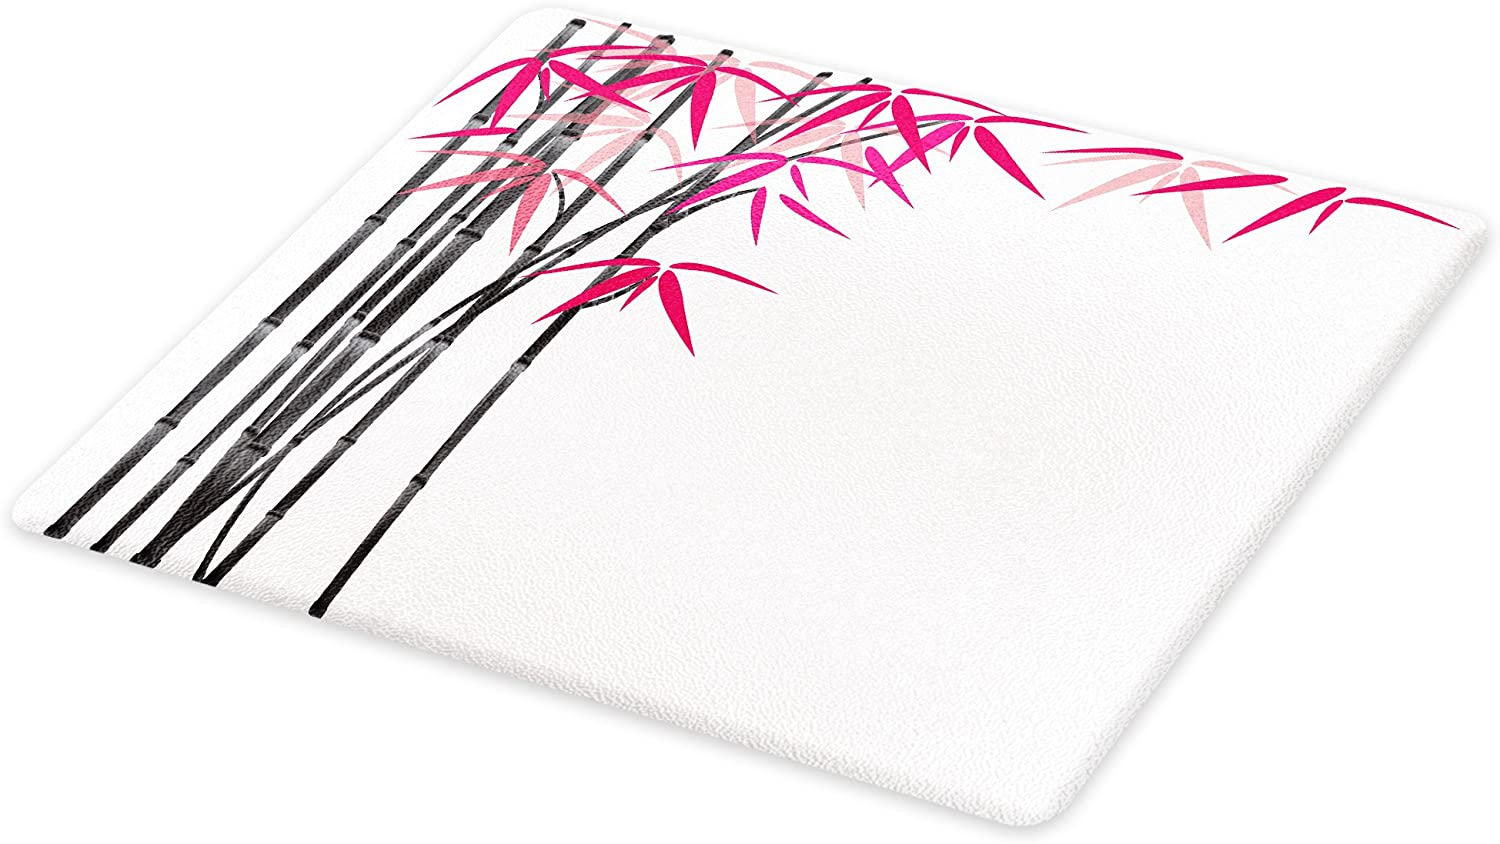 Lunarable Bamboo Cutting Board, Bamboo Tree with Colorful Leaves Exotic Elements Bushes Work, Decorative Tempered Glass Cutting and Serving Board, Small Size, Pink Grey White